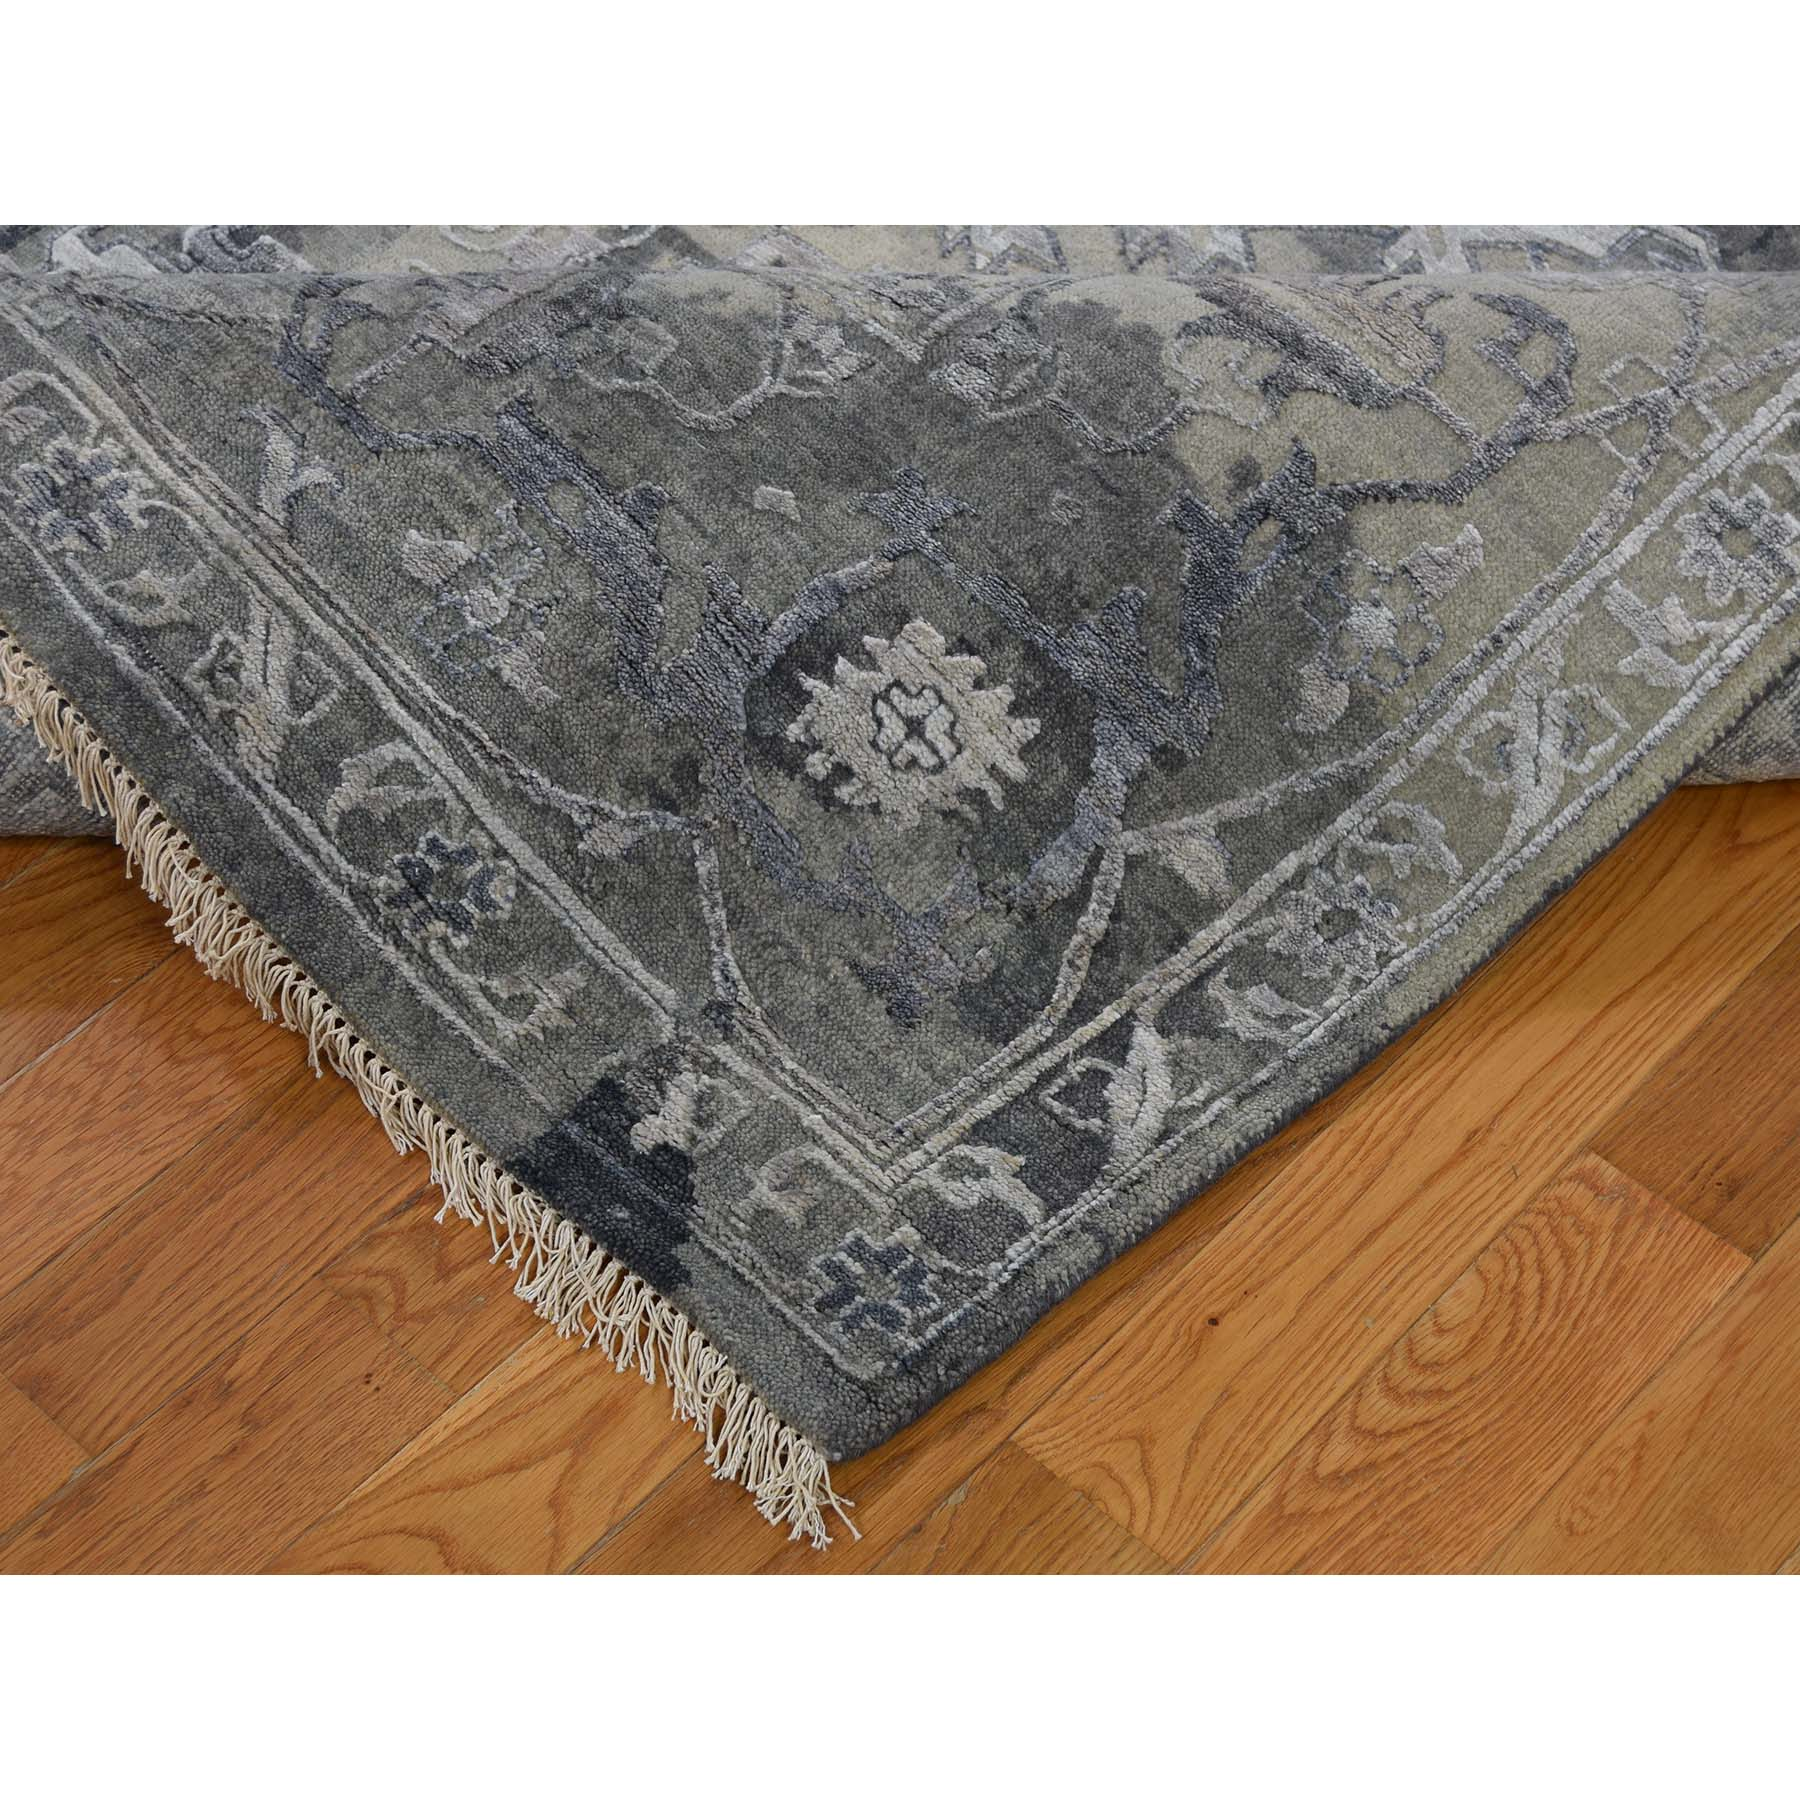 9-x11-10  All Over Design Broken Persian Heriz Wool And Silk Hand-Knotted Oriental Rug